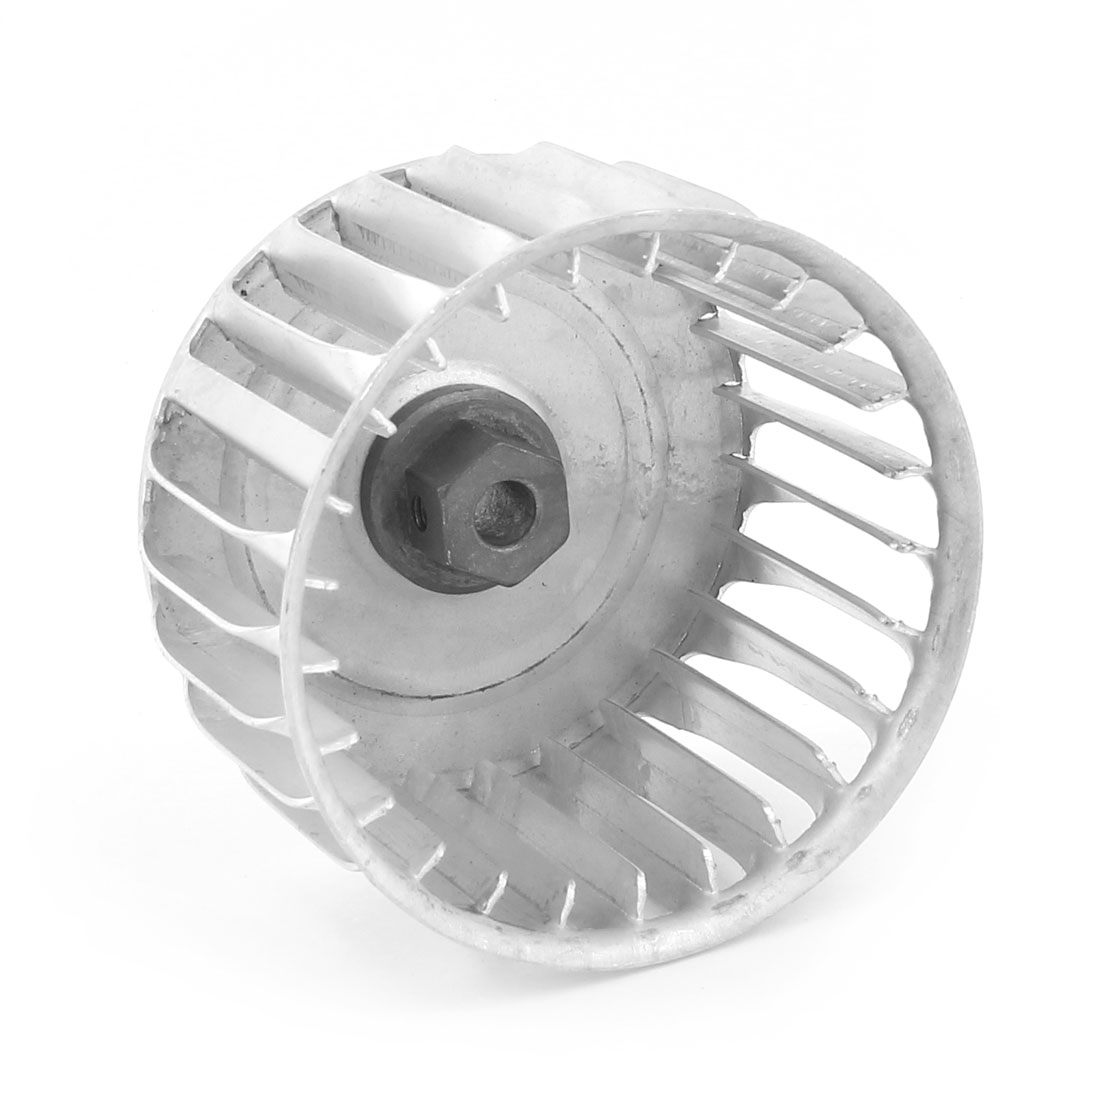 "3.5"" Diameter Centrifugal Wheel Round Fan Impeller for Water Heater"